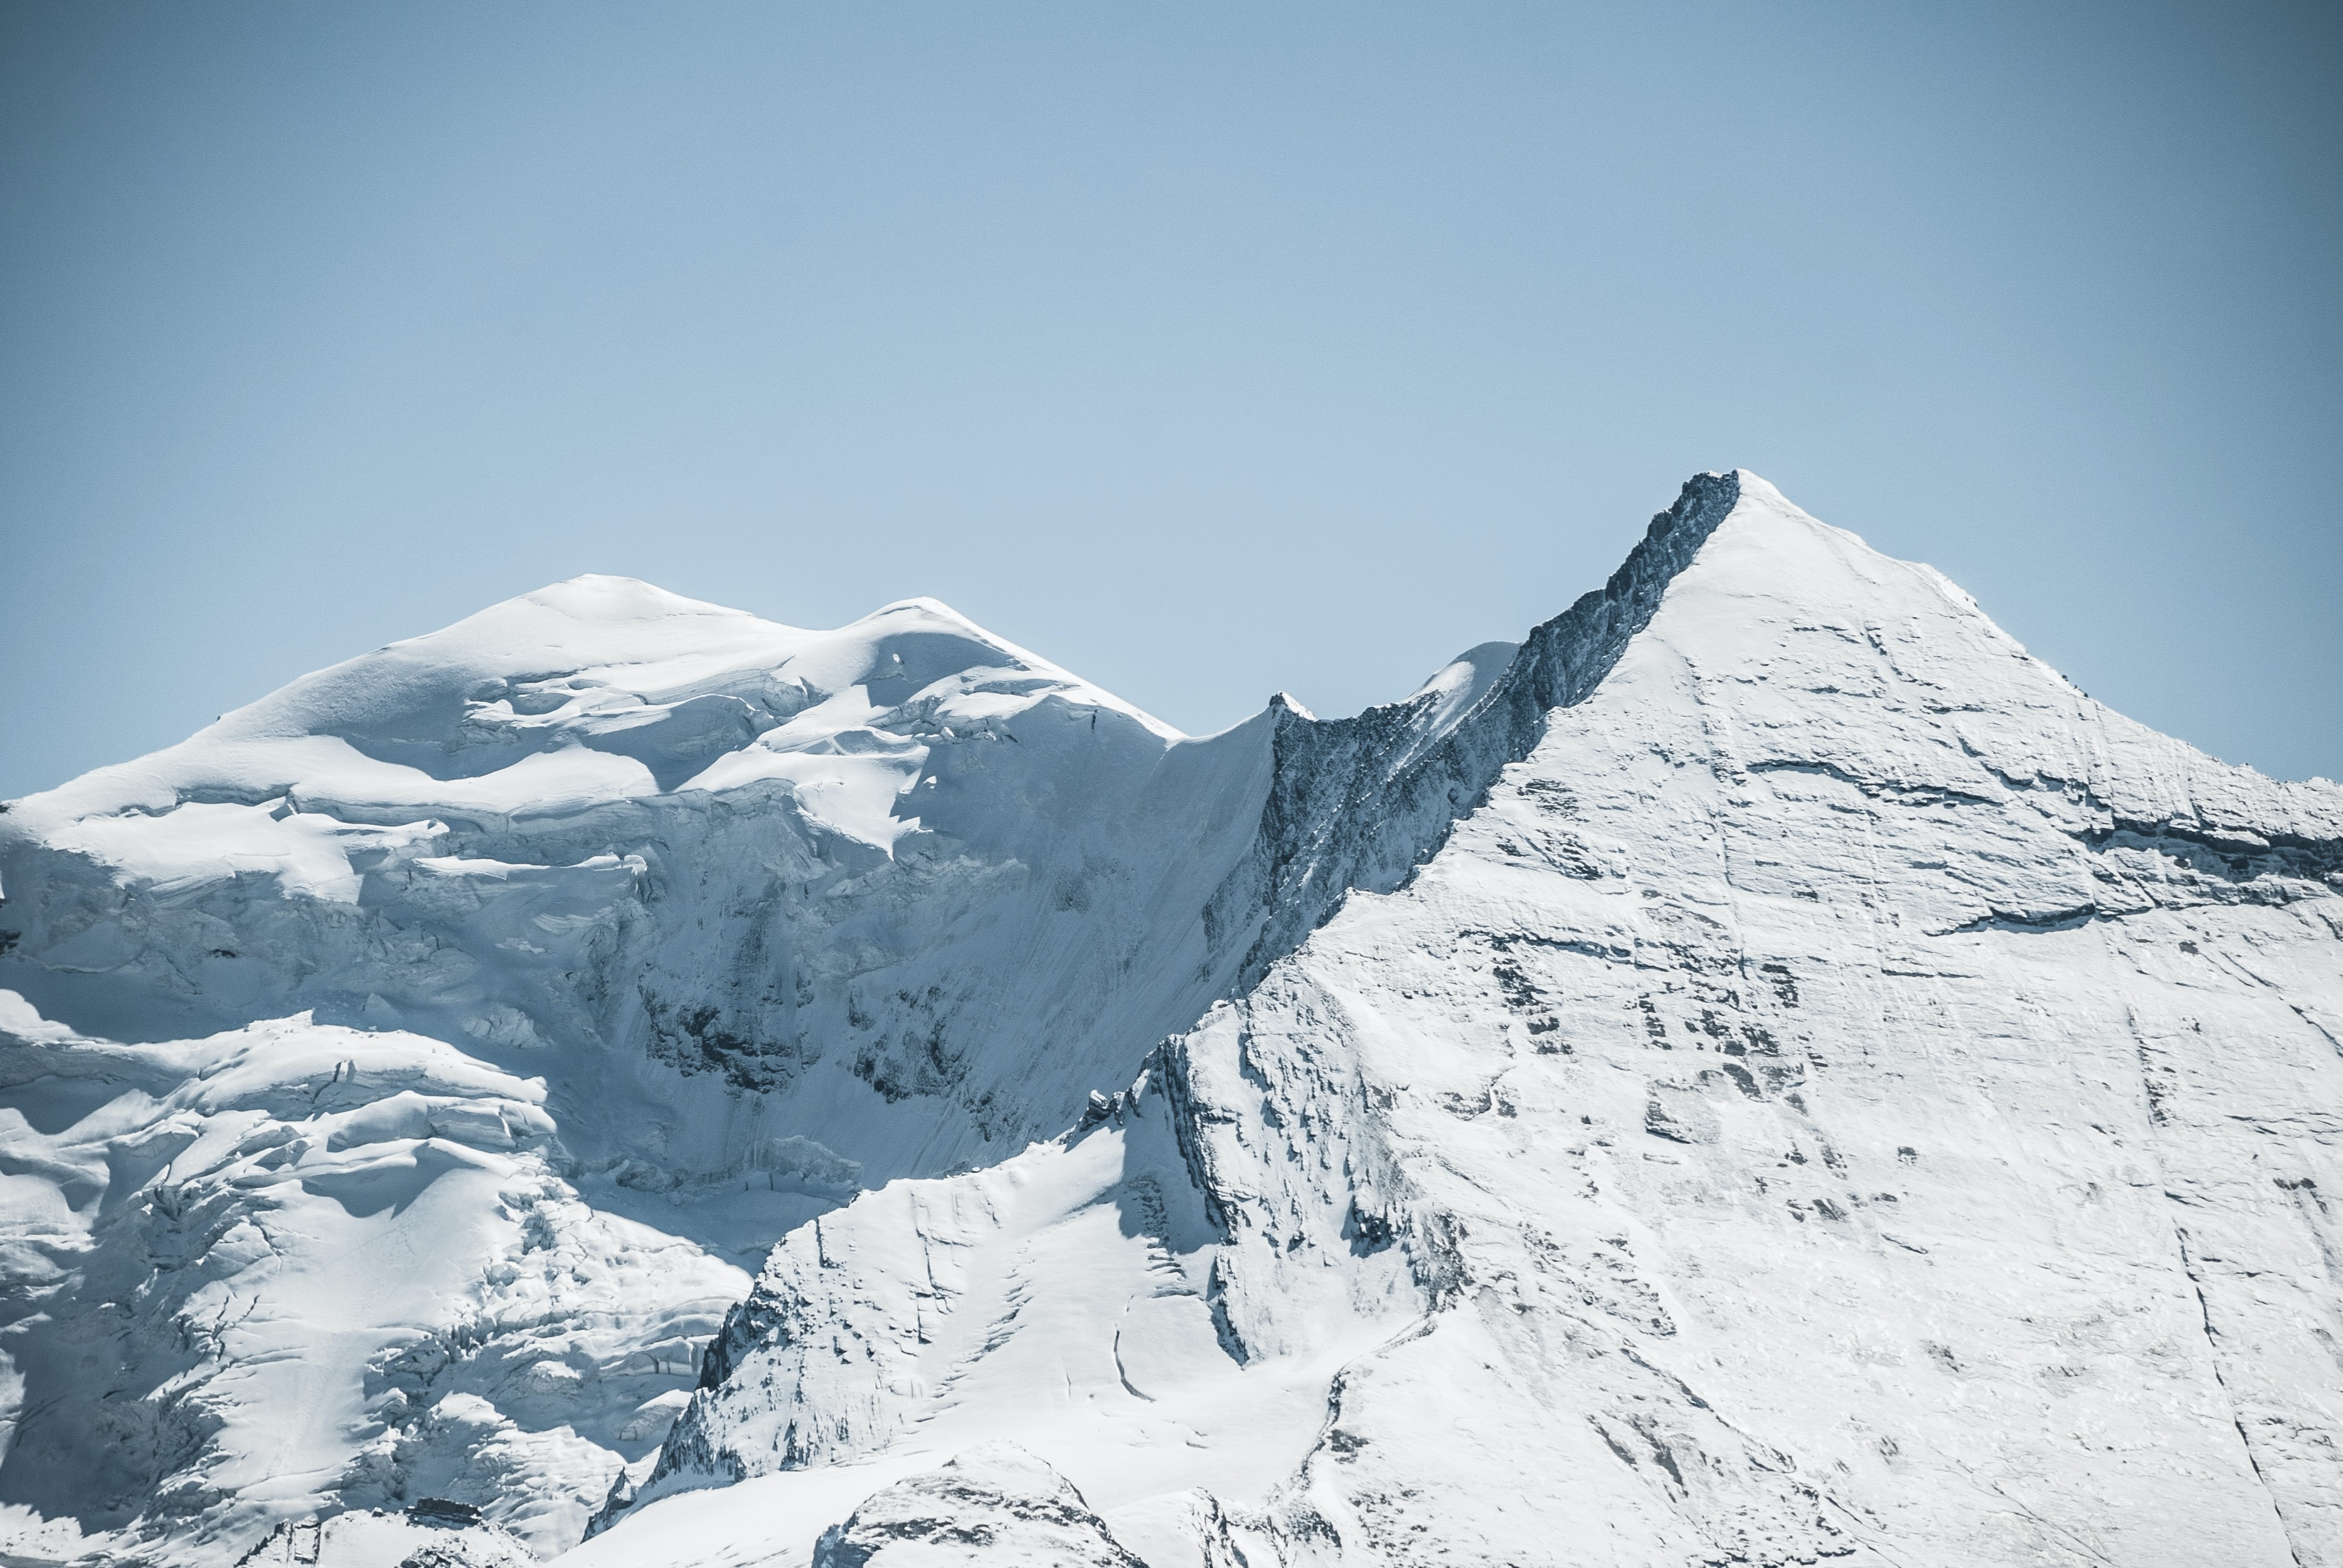 The Altels mountain in Switzerland, coated with snow